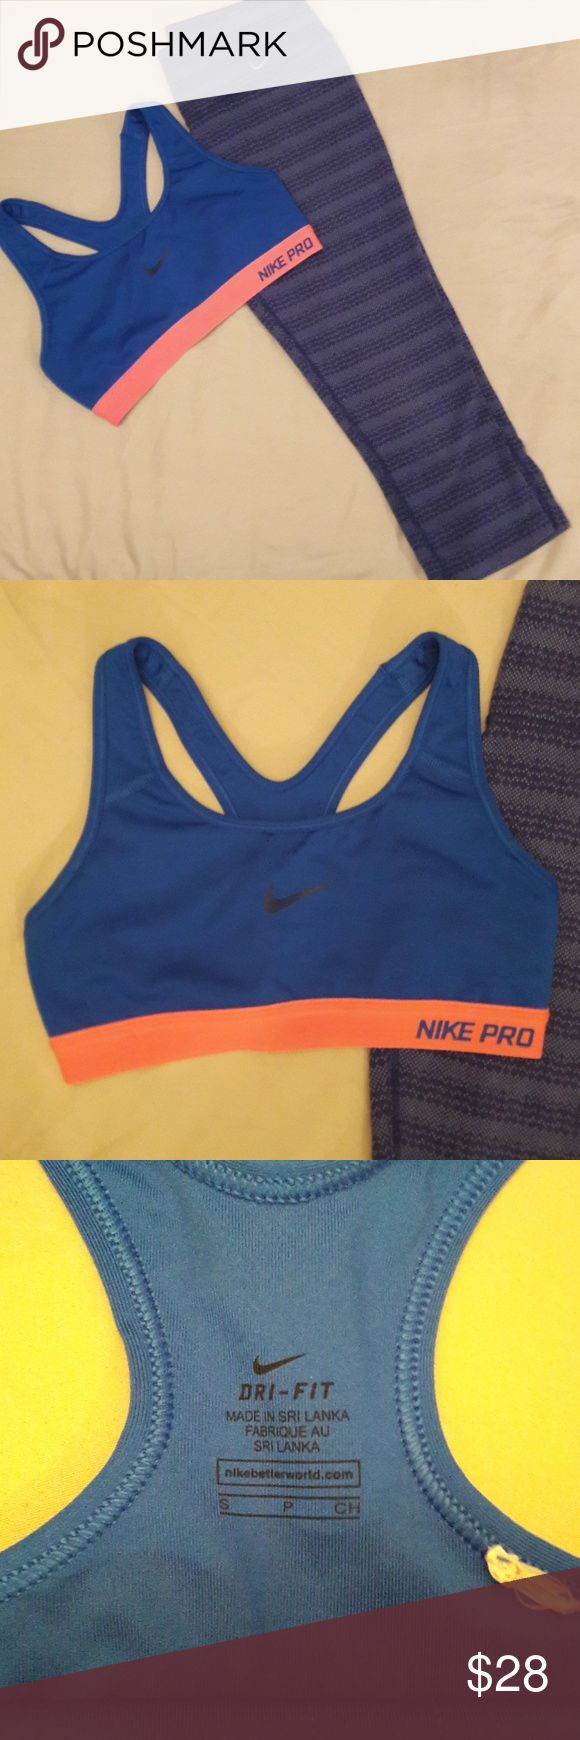 Nike capri leggings & Nike Pro bra Nike Capri leggings size small and Nike Pro sports bra size small.  Both are like new condition. Nike Intimates & Sleepwear Bras